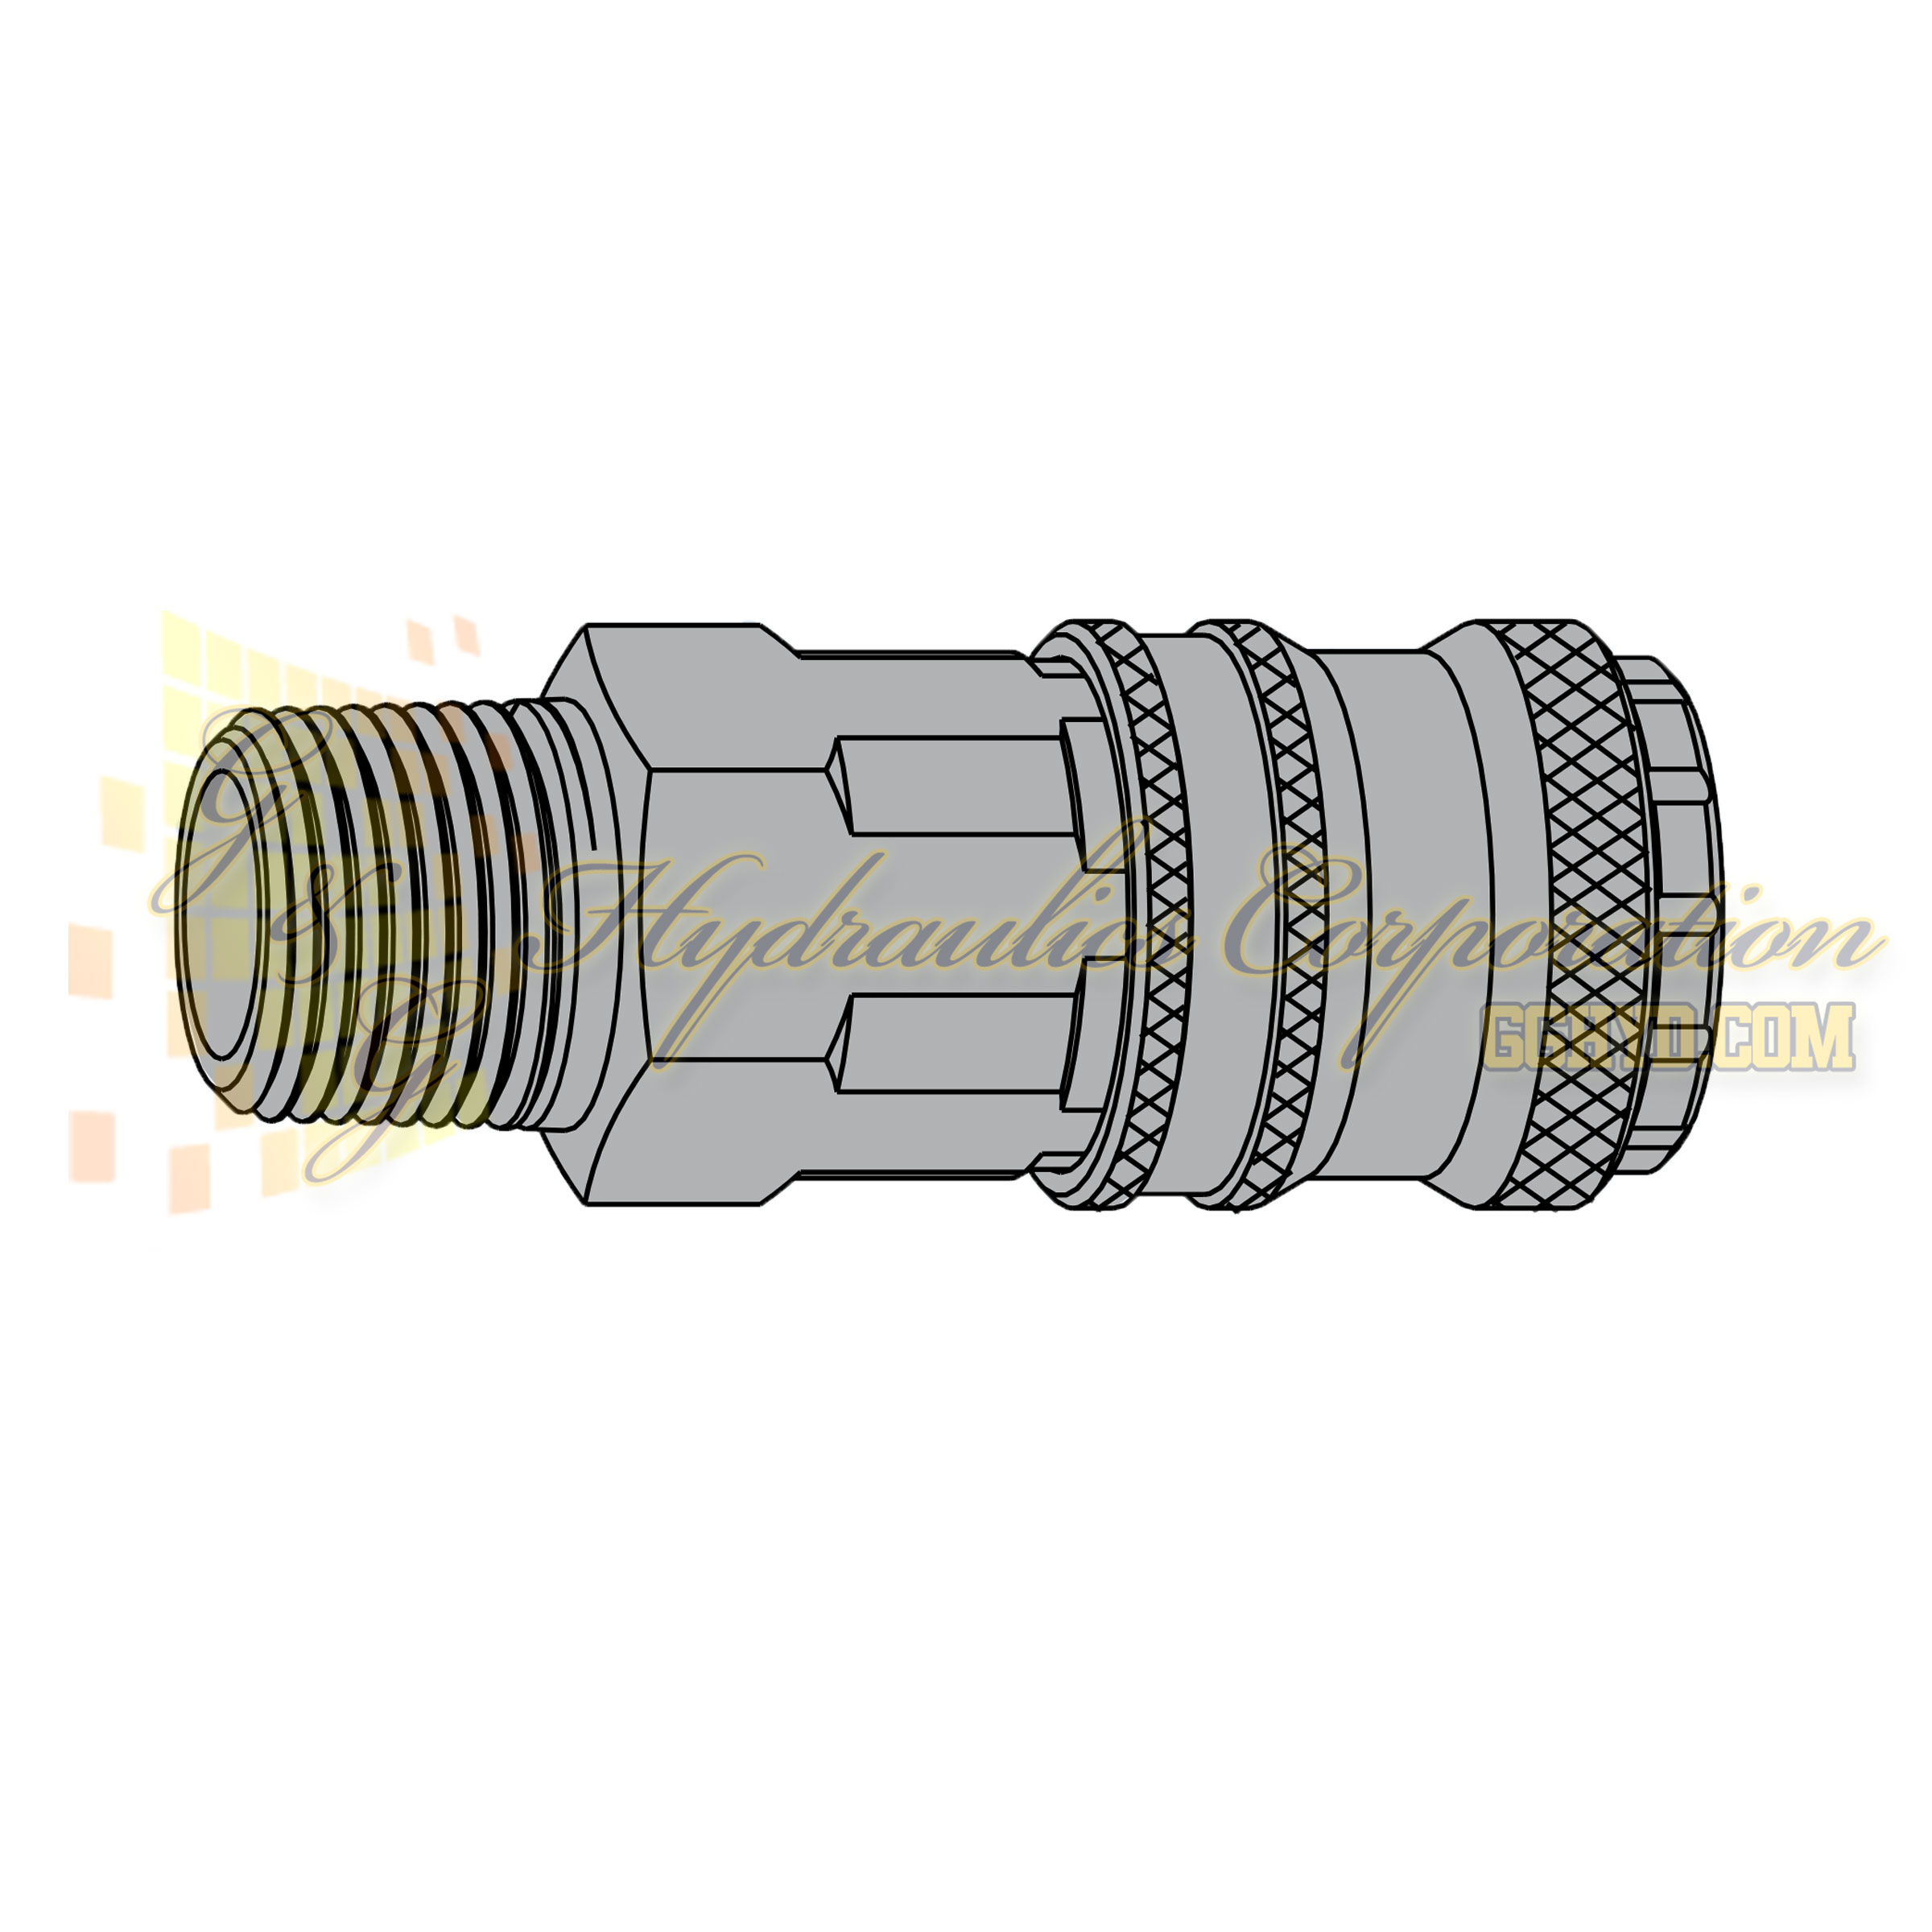 "10-320-1452 CEJN Standard and Vented Safety Coupler, 1/4"" NPT Male Threads"